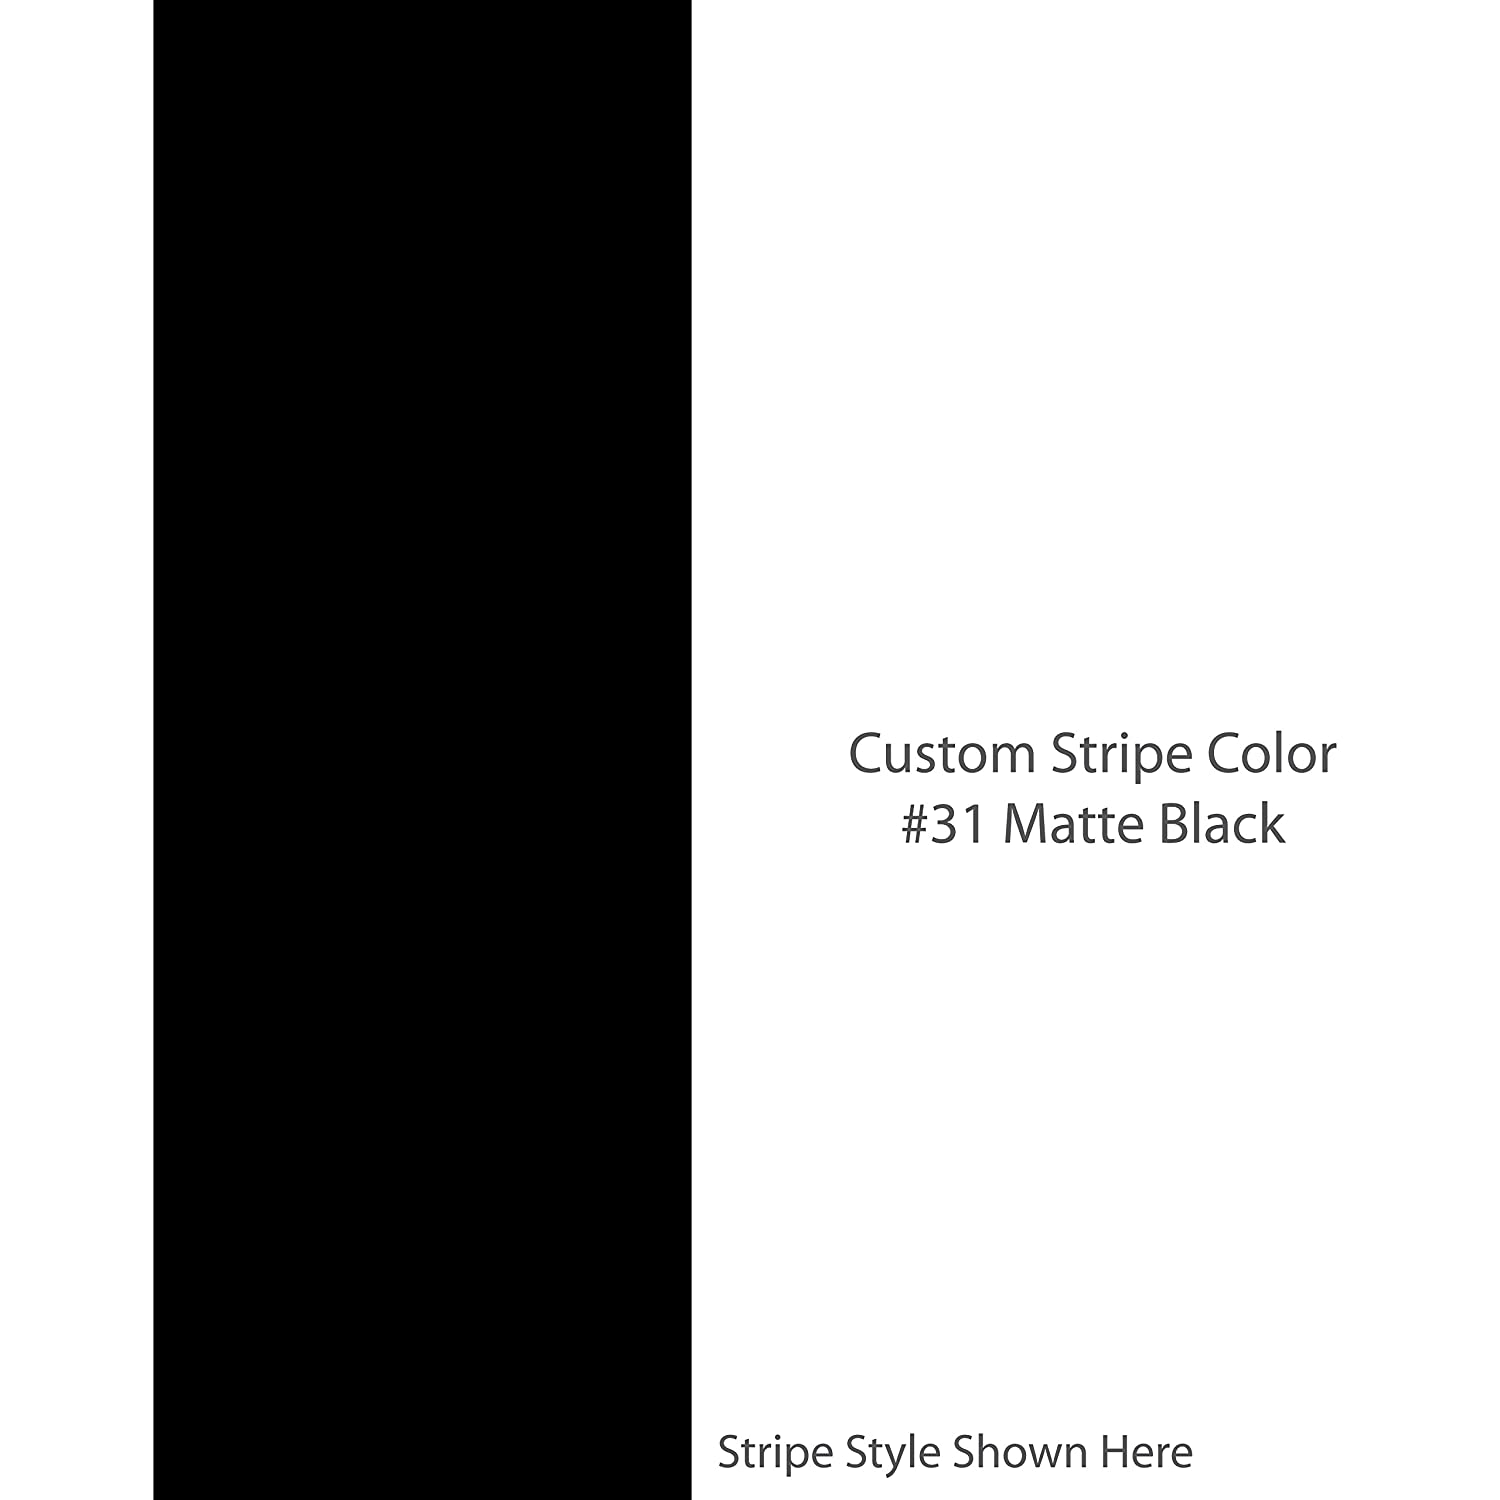 Solid 2 inch wide custom racing stripes color matte black choose from 22 stripe width options car truck auto vehicle universal vinyl decal custom